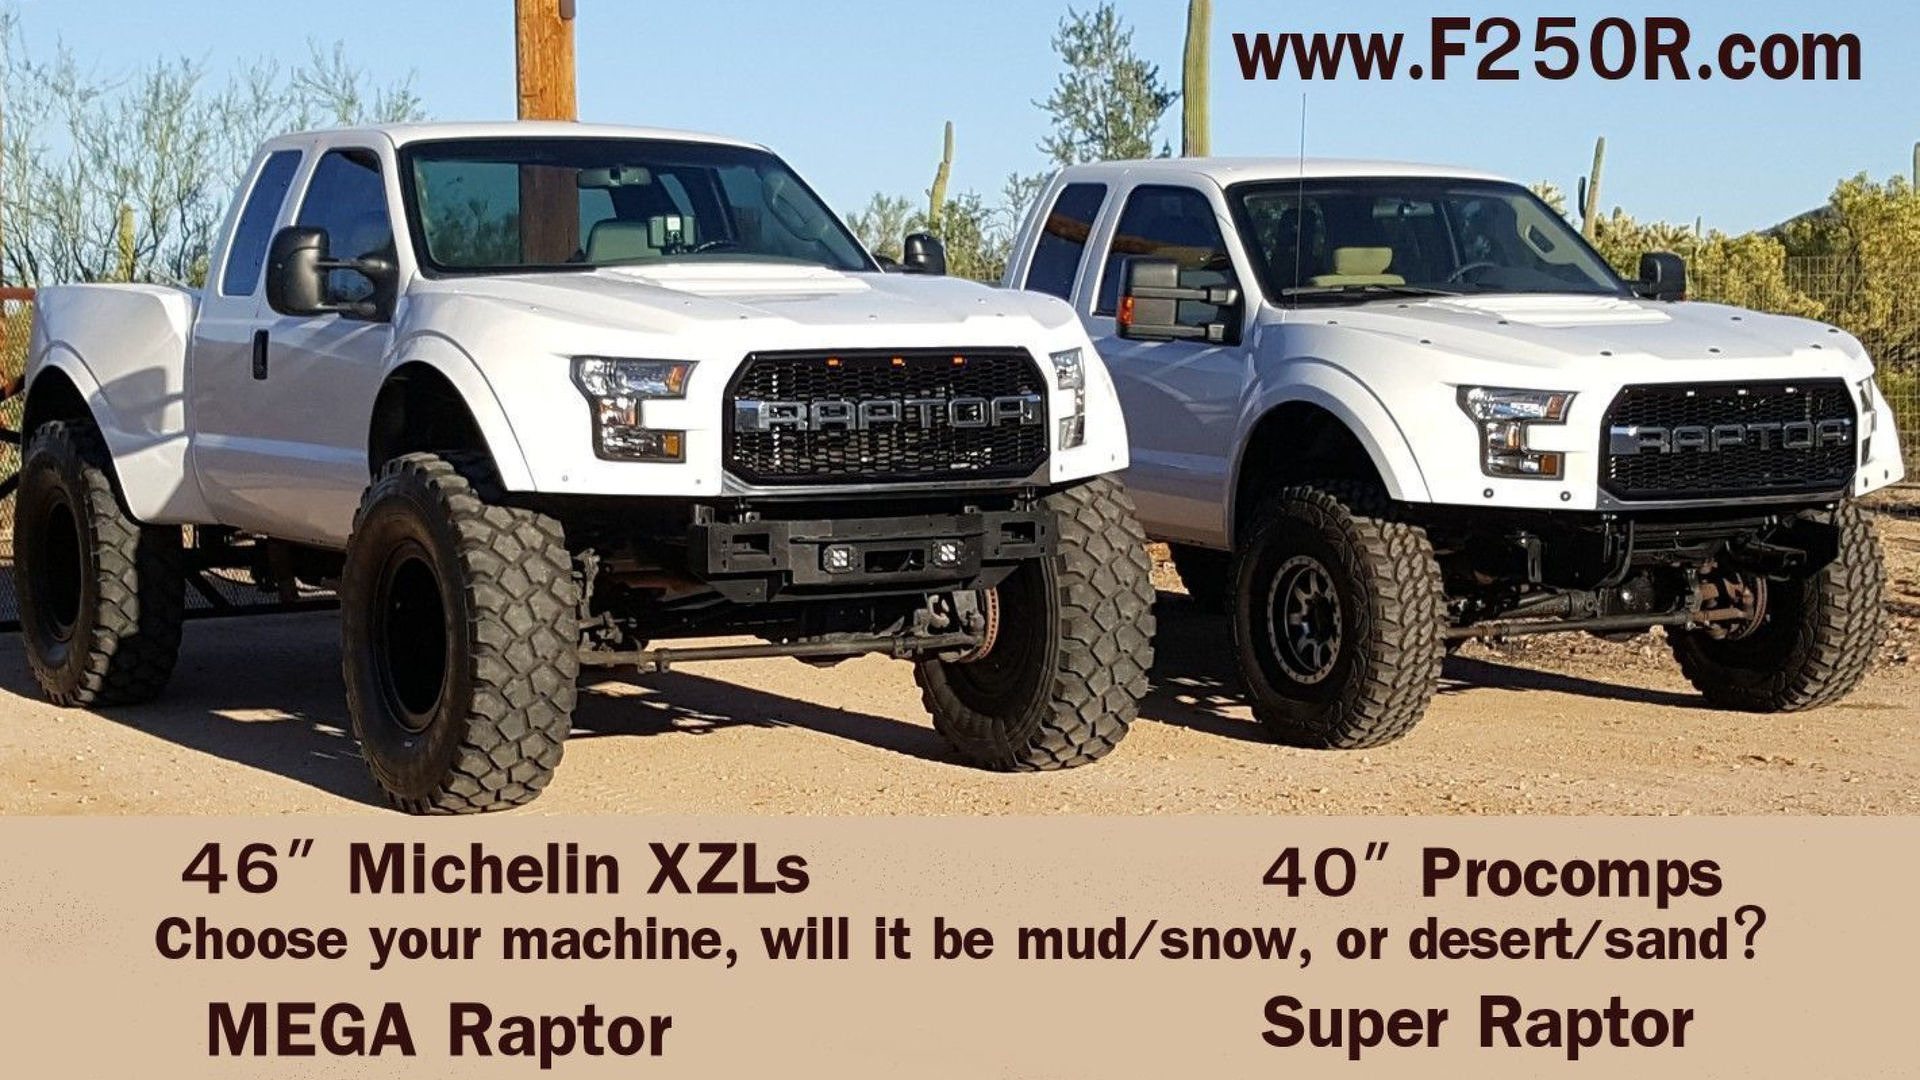 Ford F 250 Mega Raptor Has 46 Inch Tires Takes No Prisoners 2004 Lifted